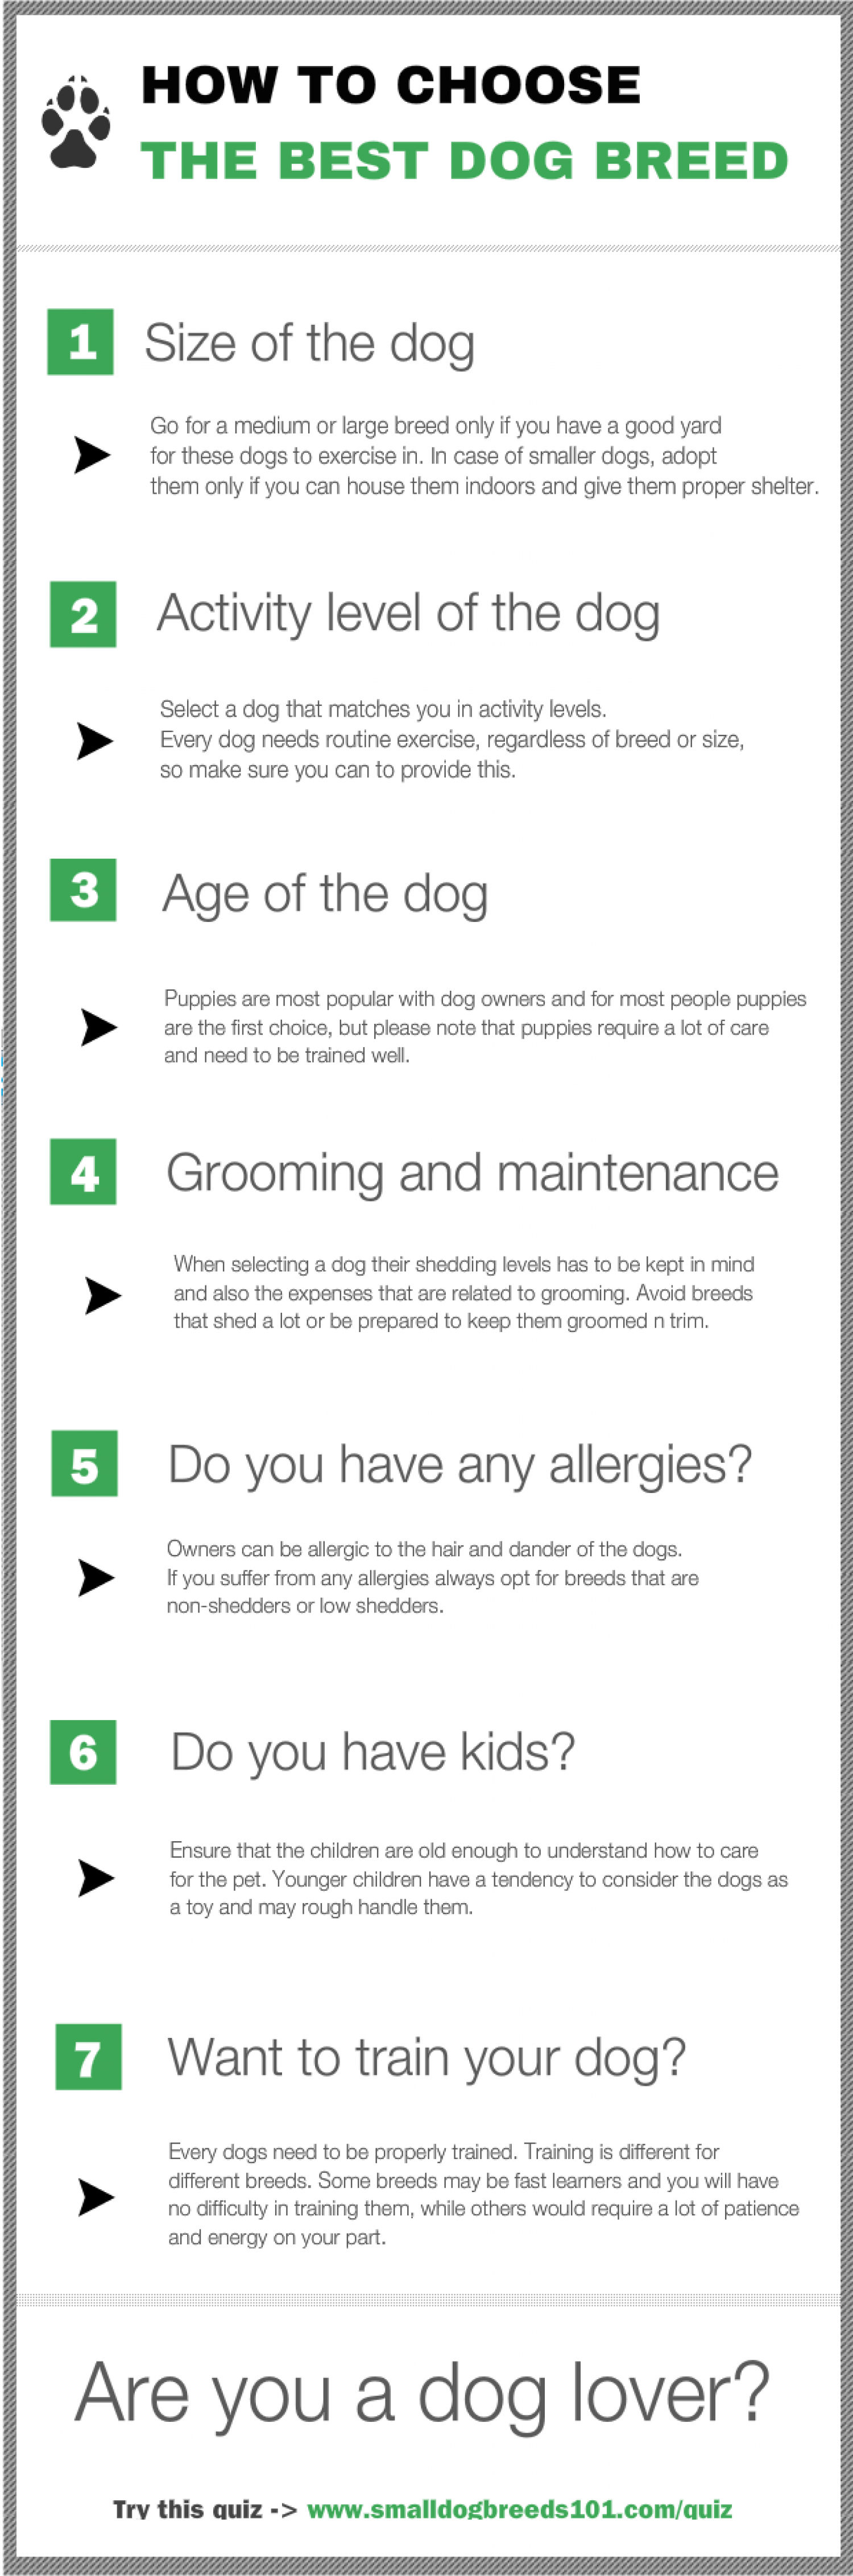 How to Choose a Dog? Infographic